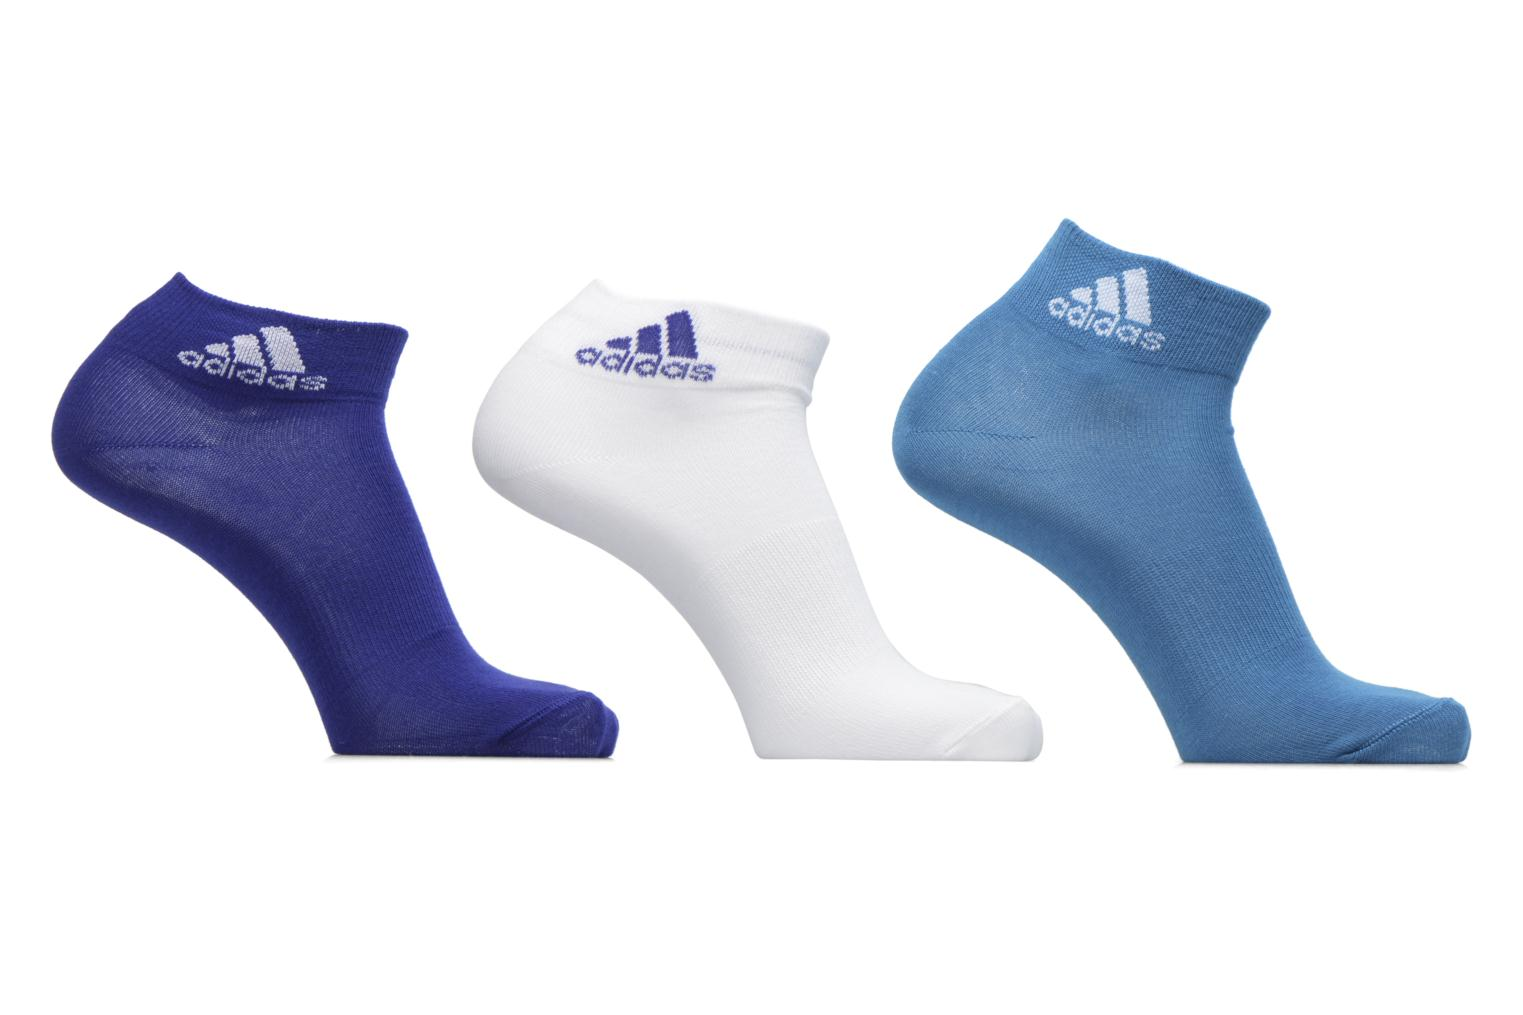 PER ANKLE T 3PP PETMYS/BLANC/ENCMYS